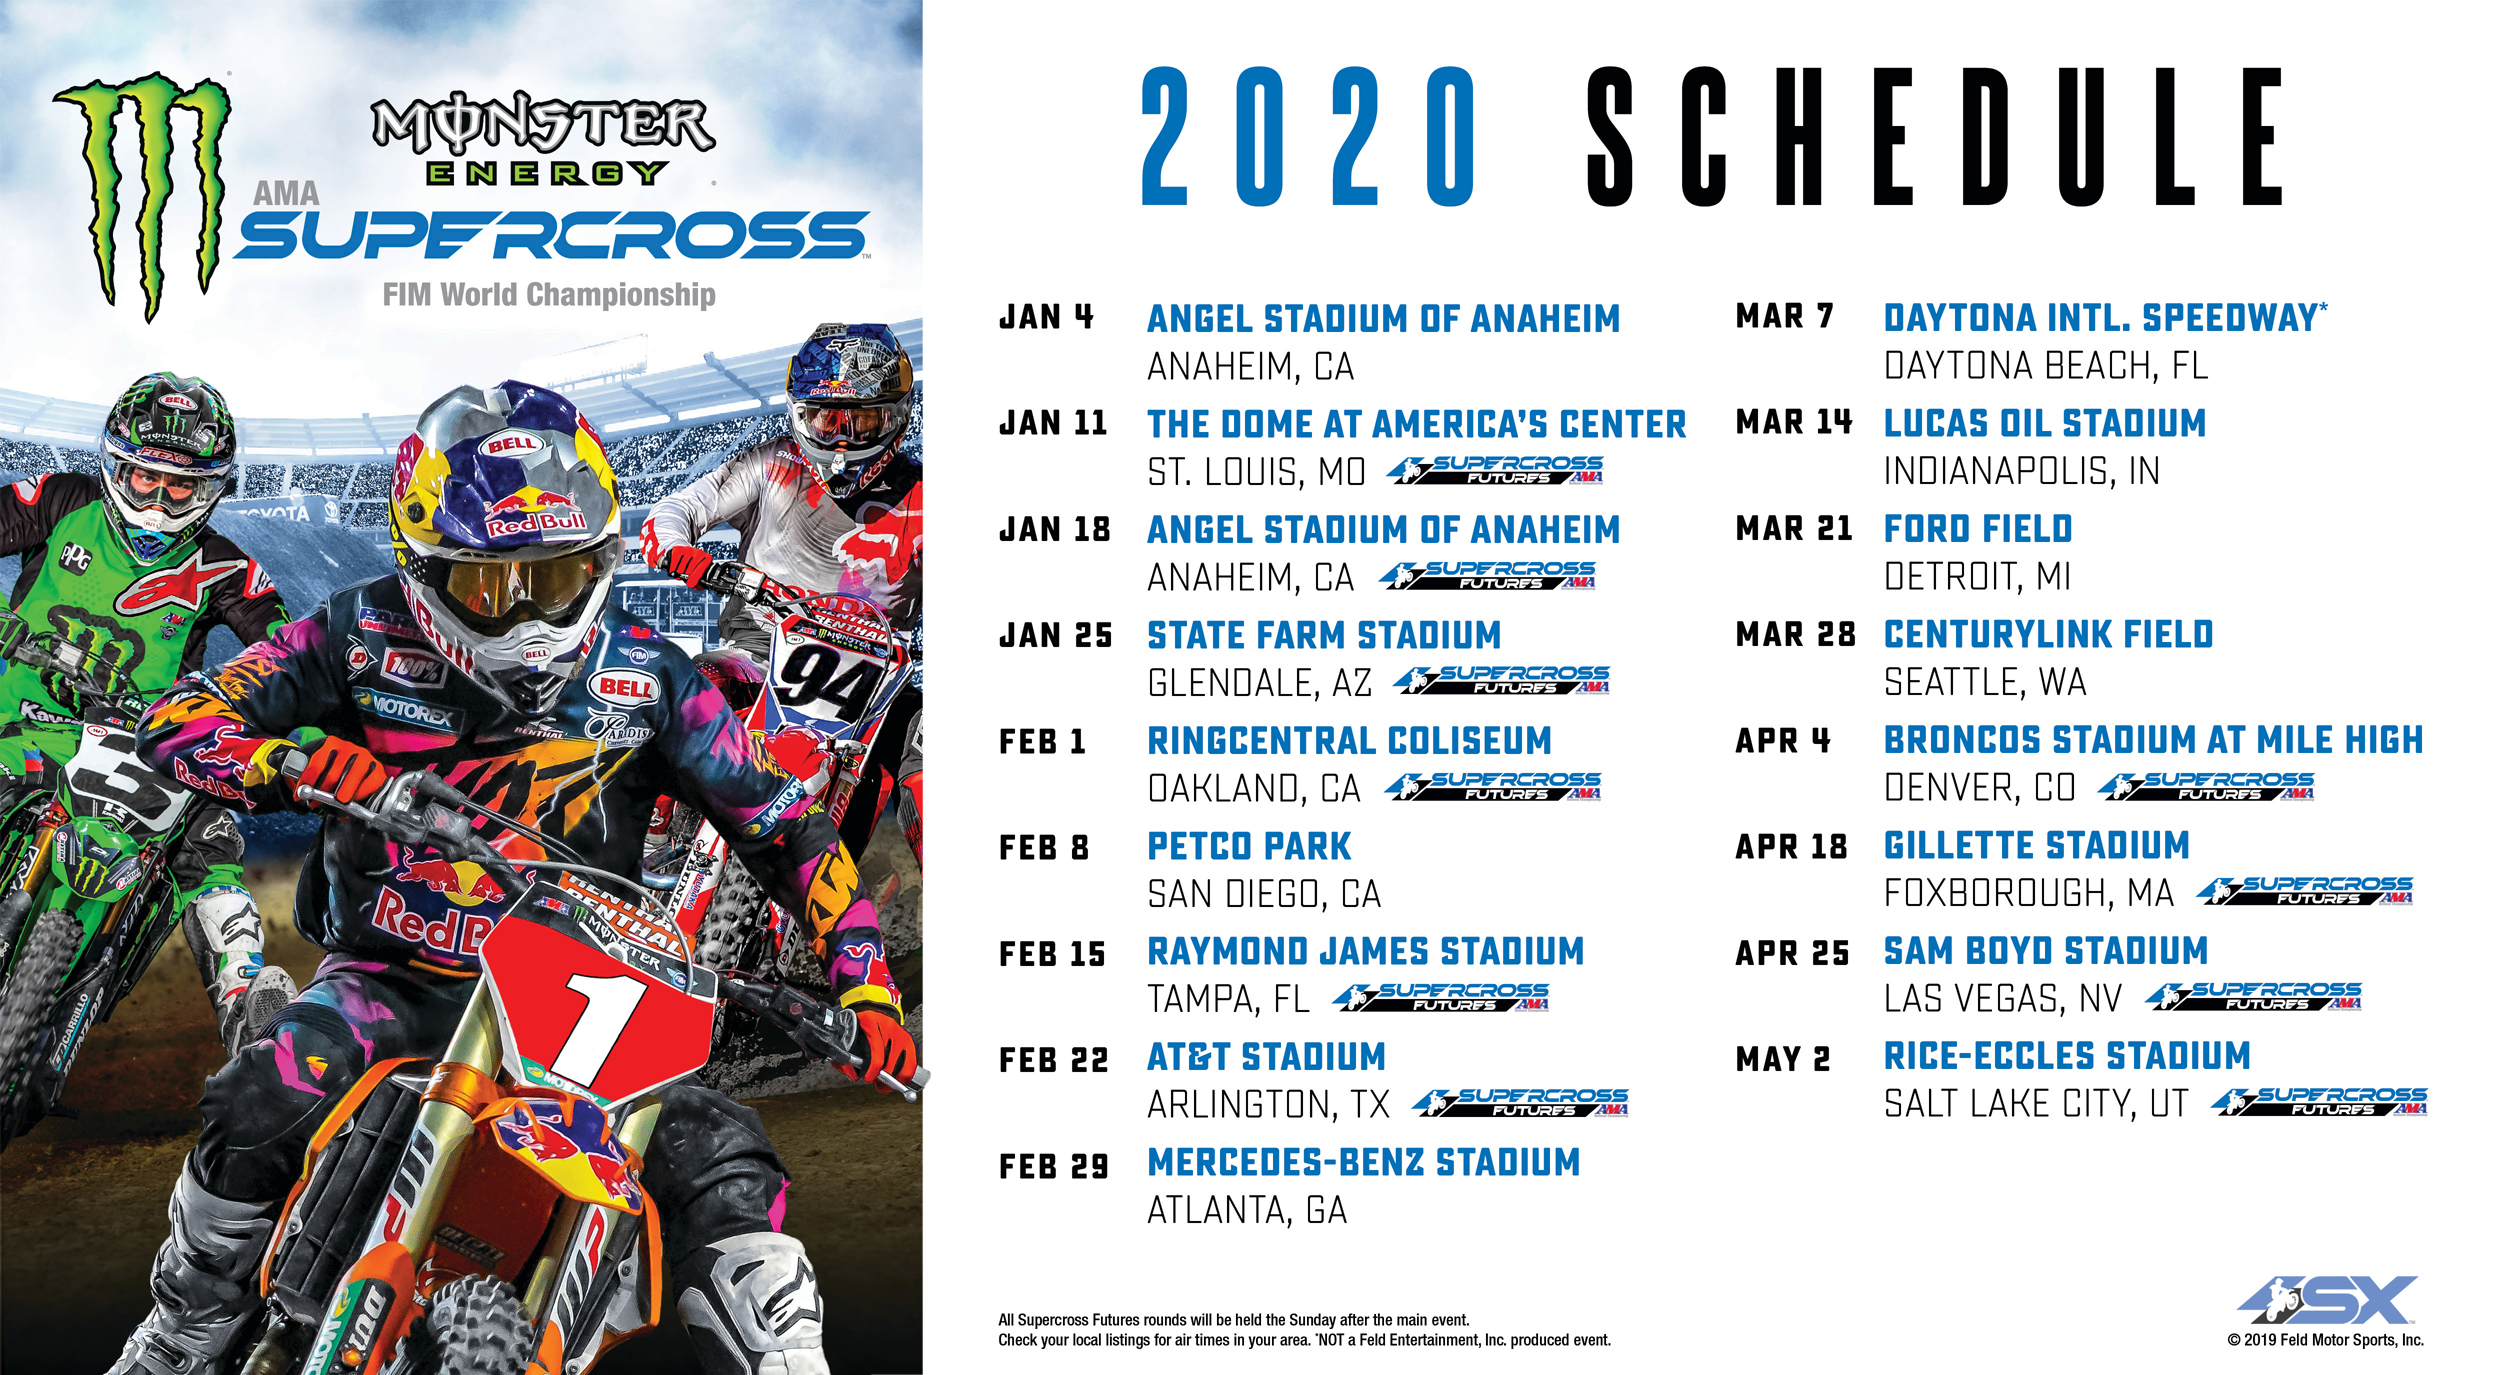 Monster Energy Supercross 2020 Race Schedule